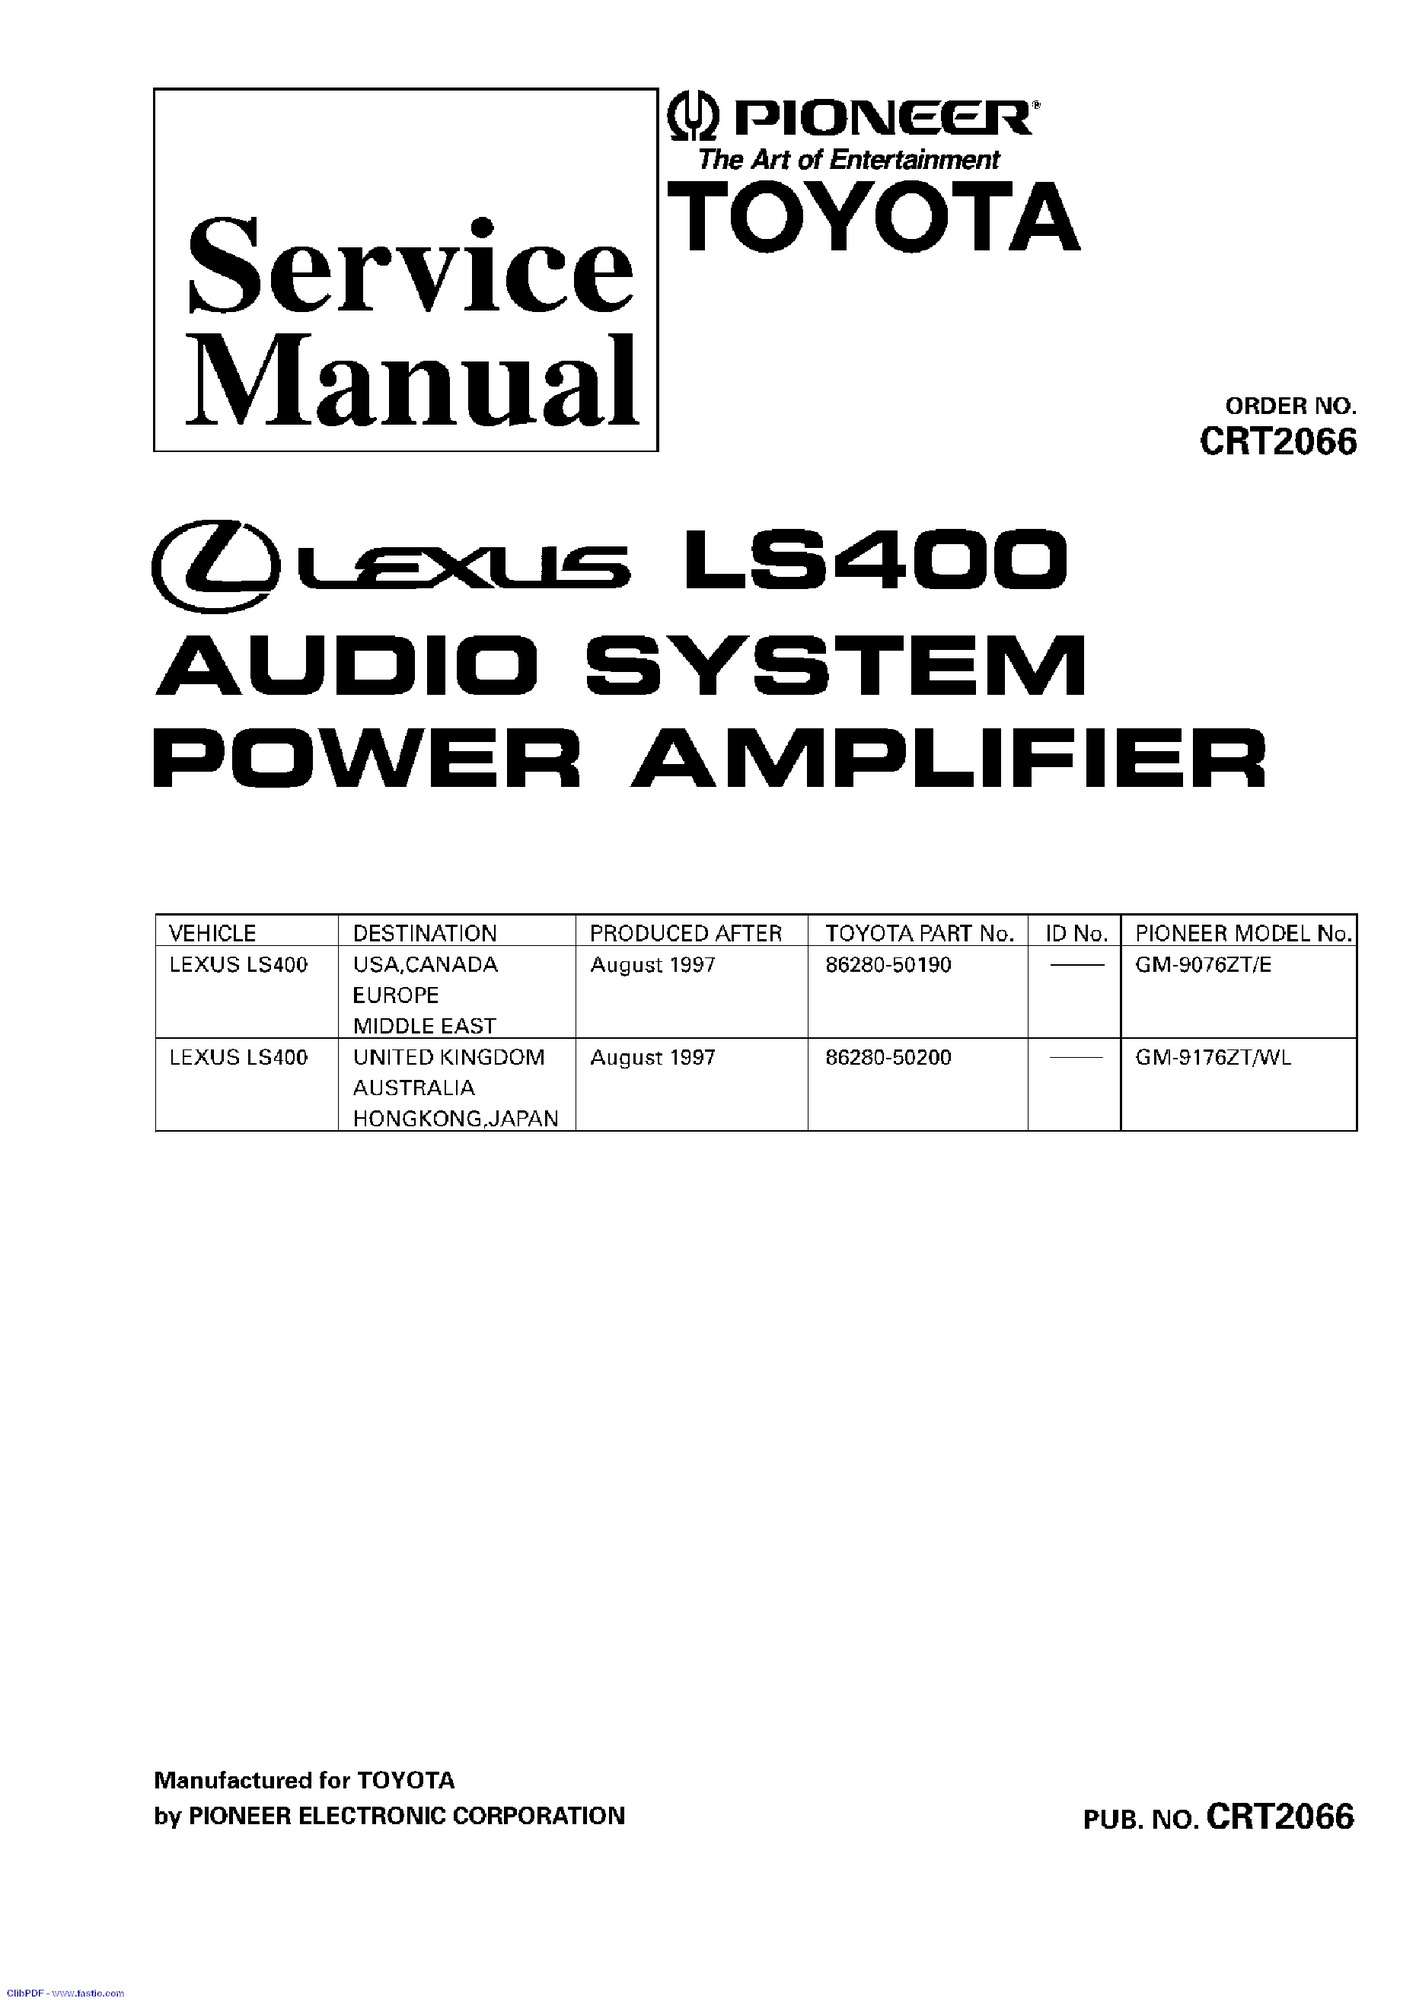 91 lexu ls400 part